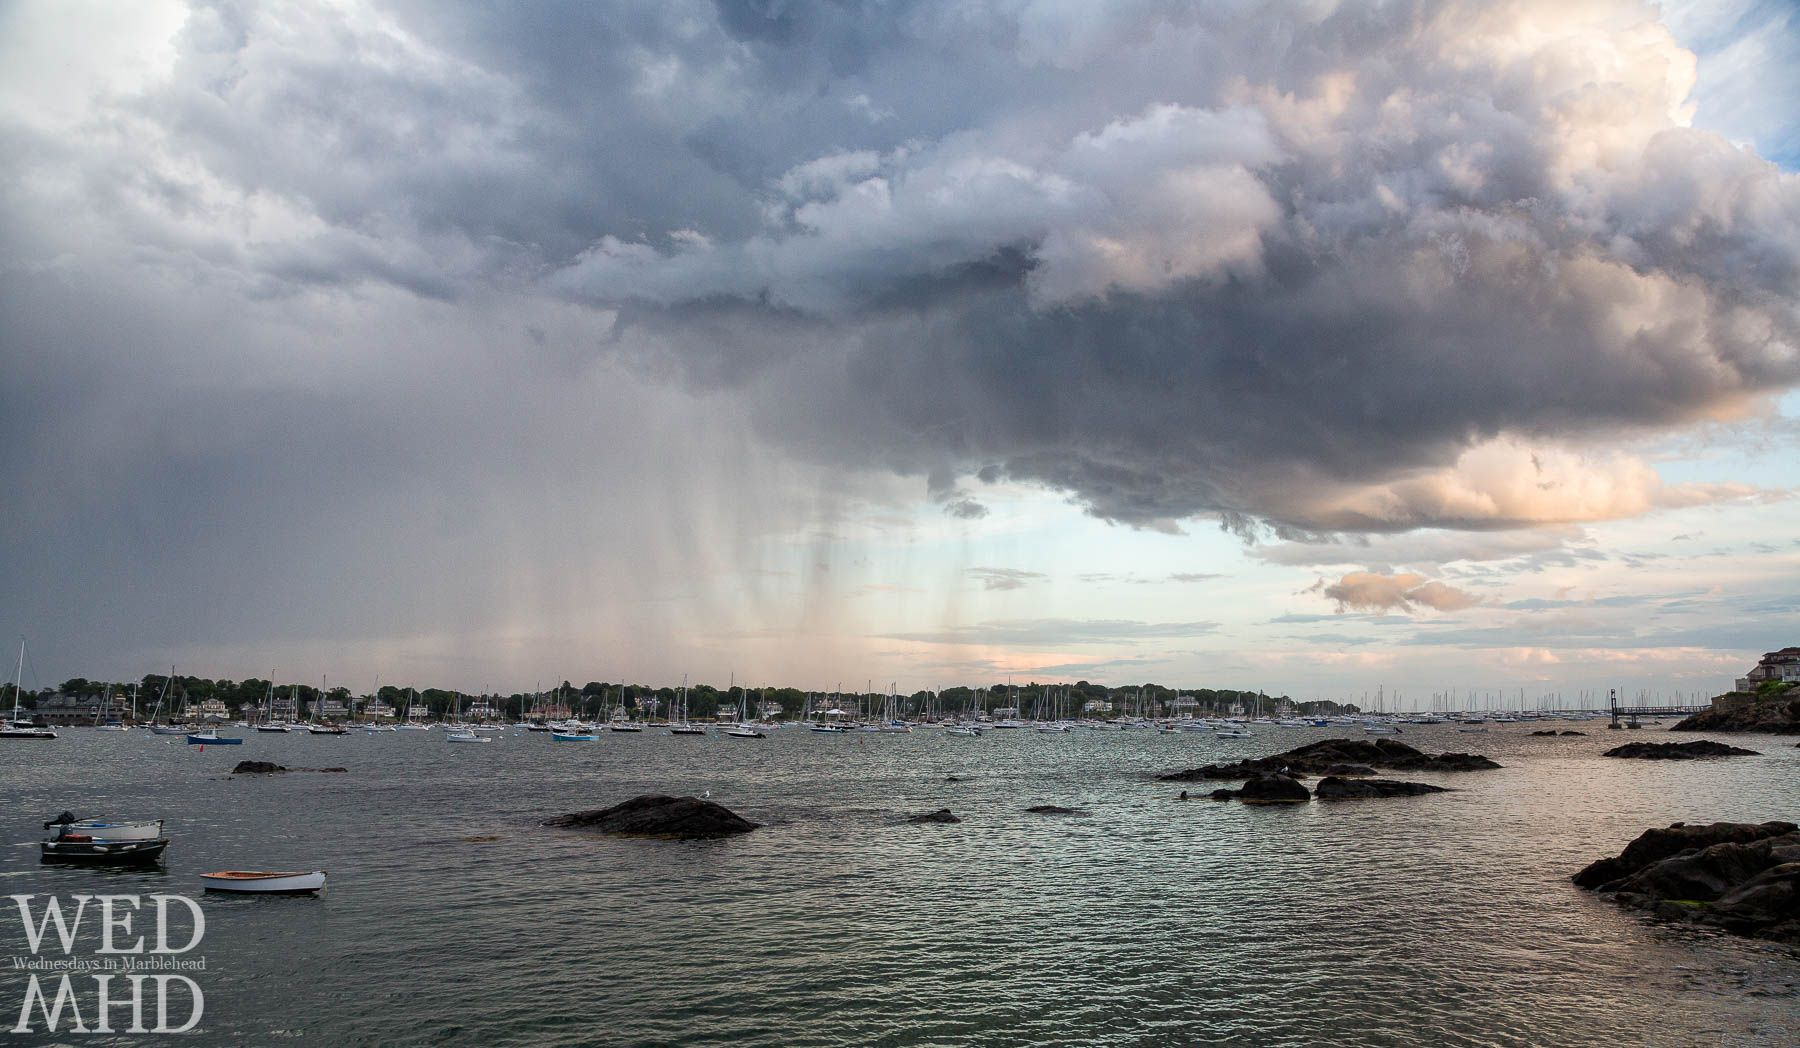 Rain falls over Marblehead Neck as passing showers form a dramatic scene over a harbor filled with boats